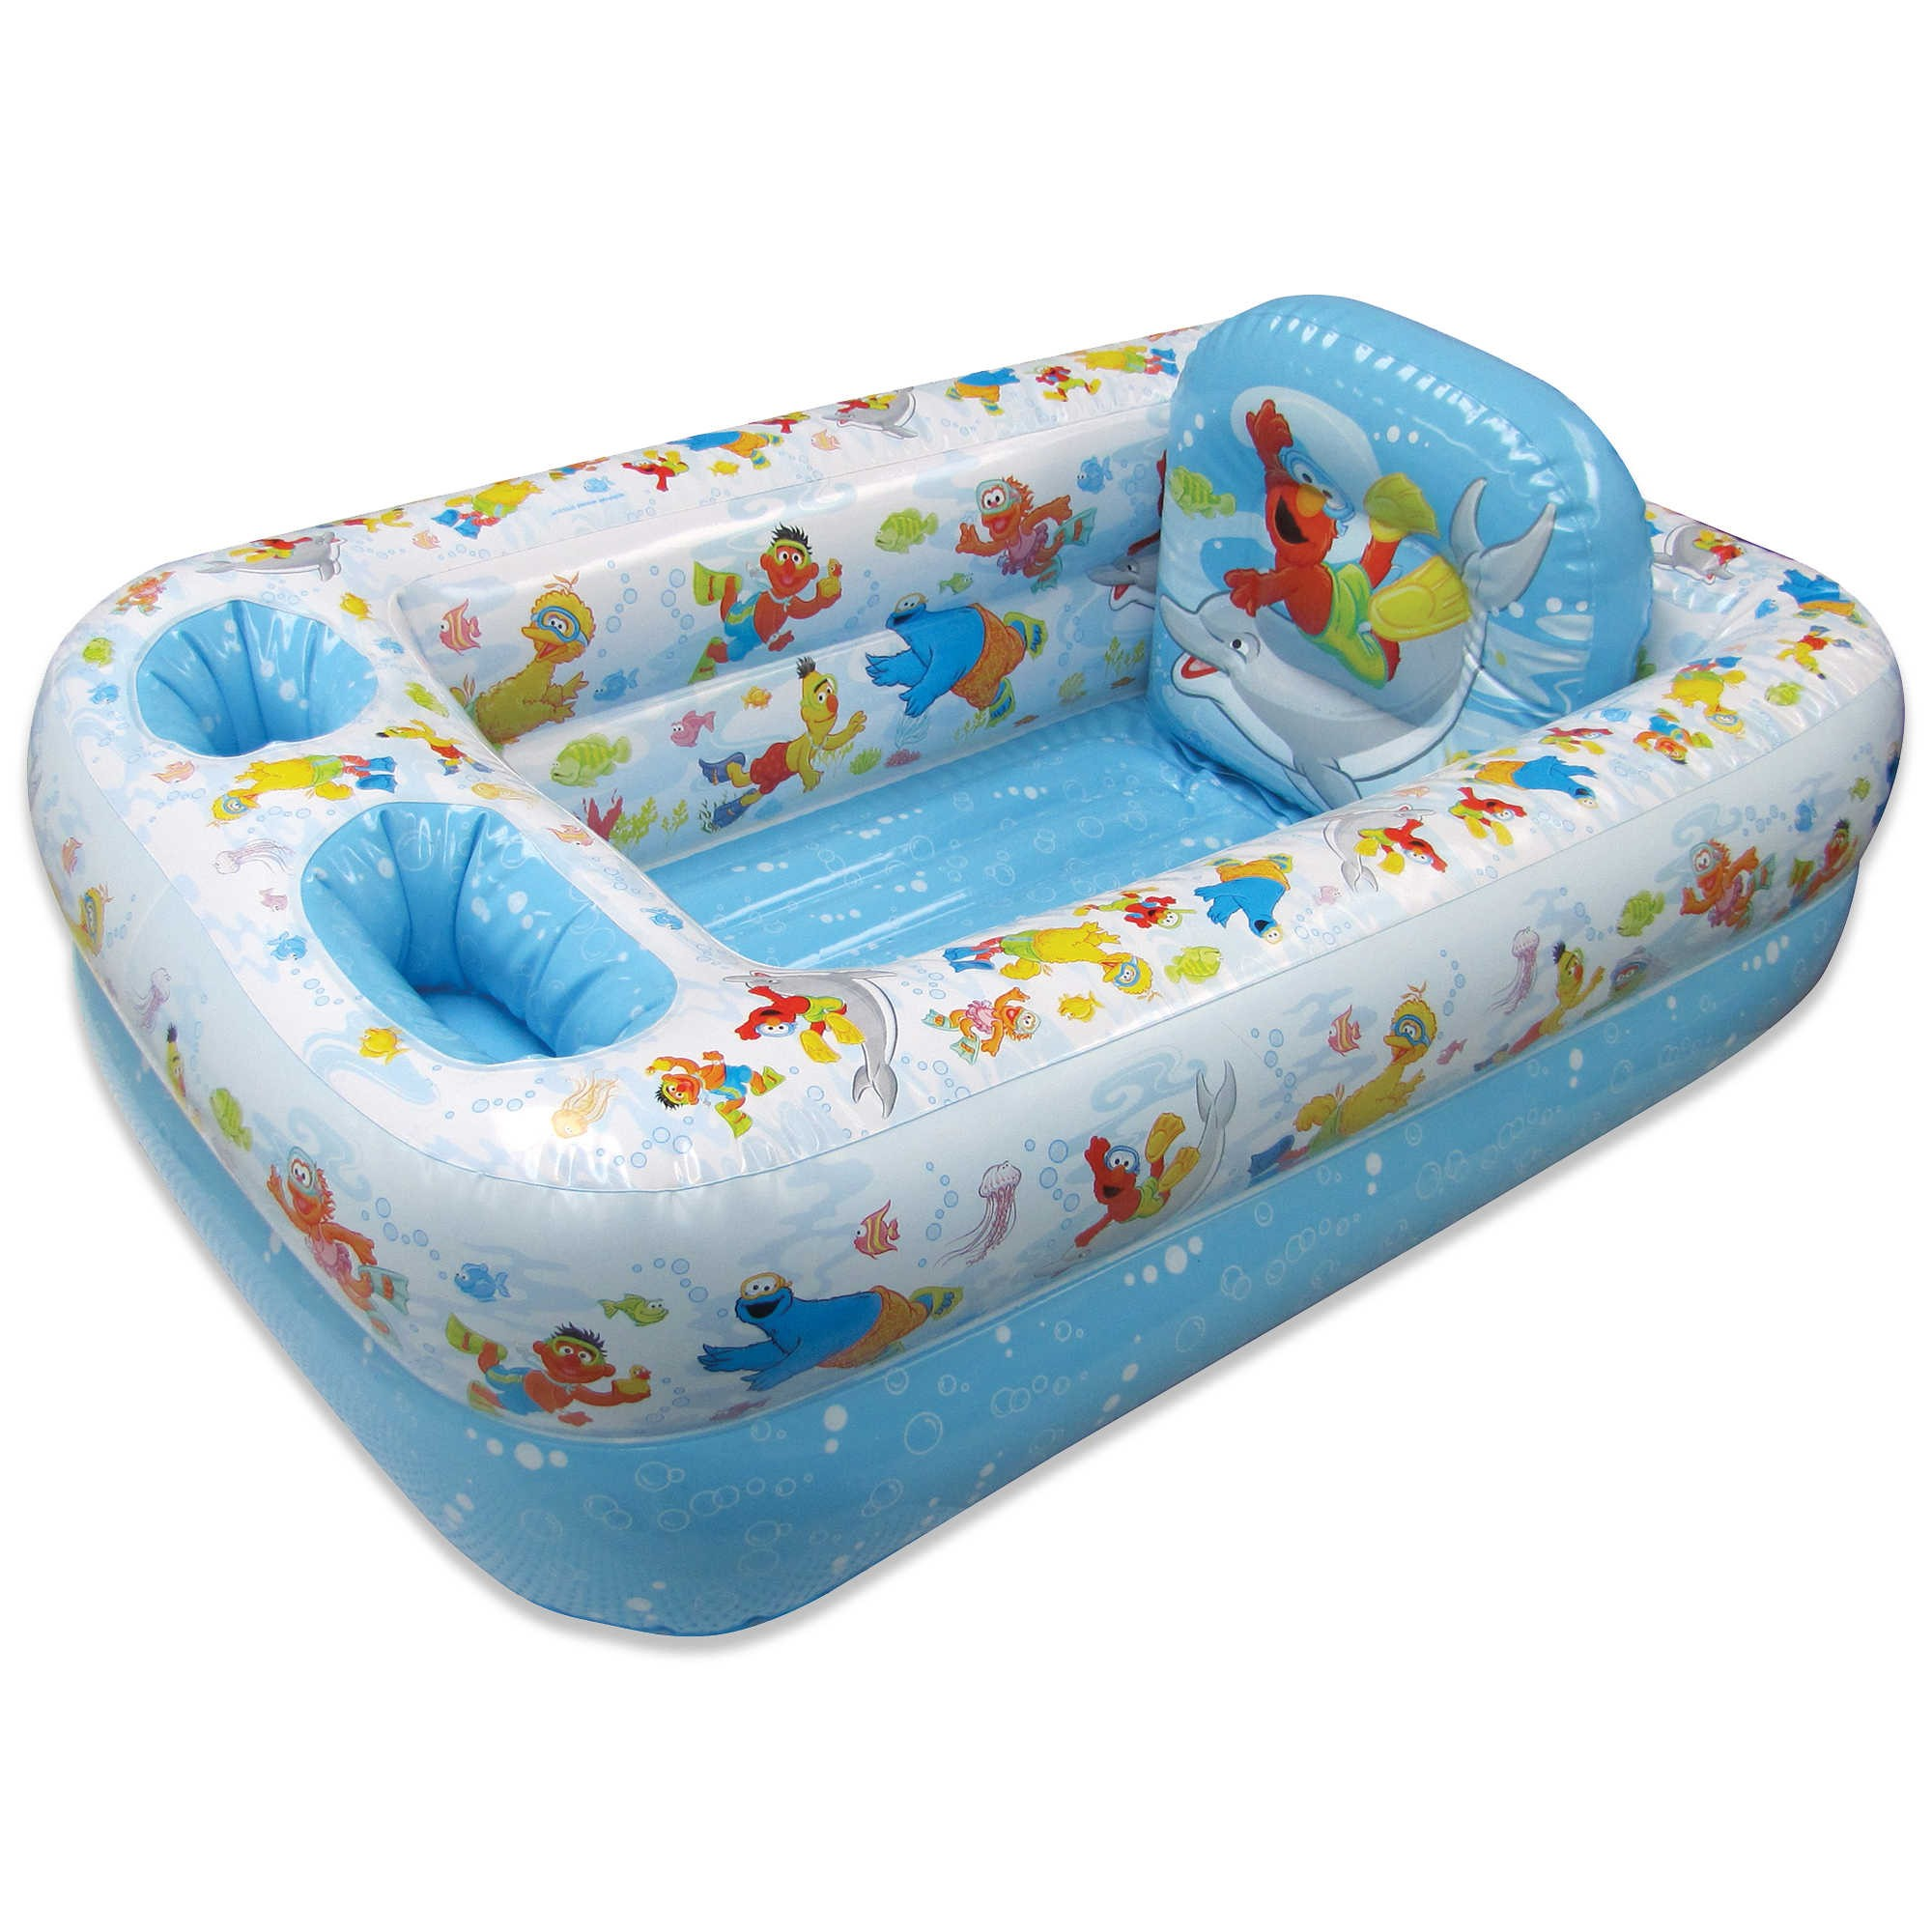 Ginsey Sesame Street Inflatable Bathtub